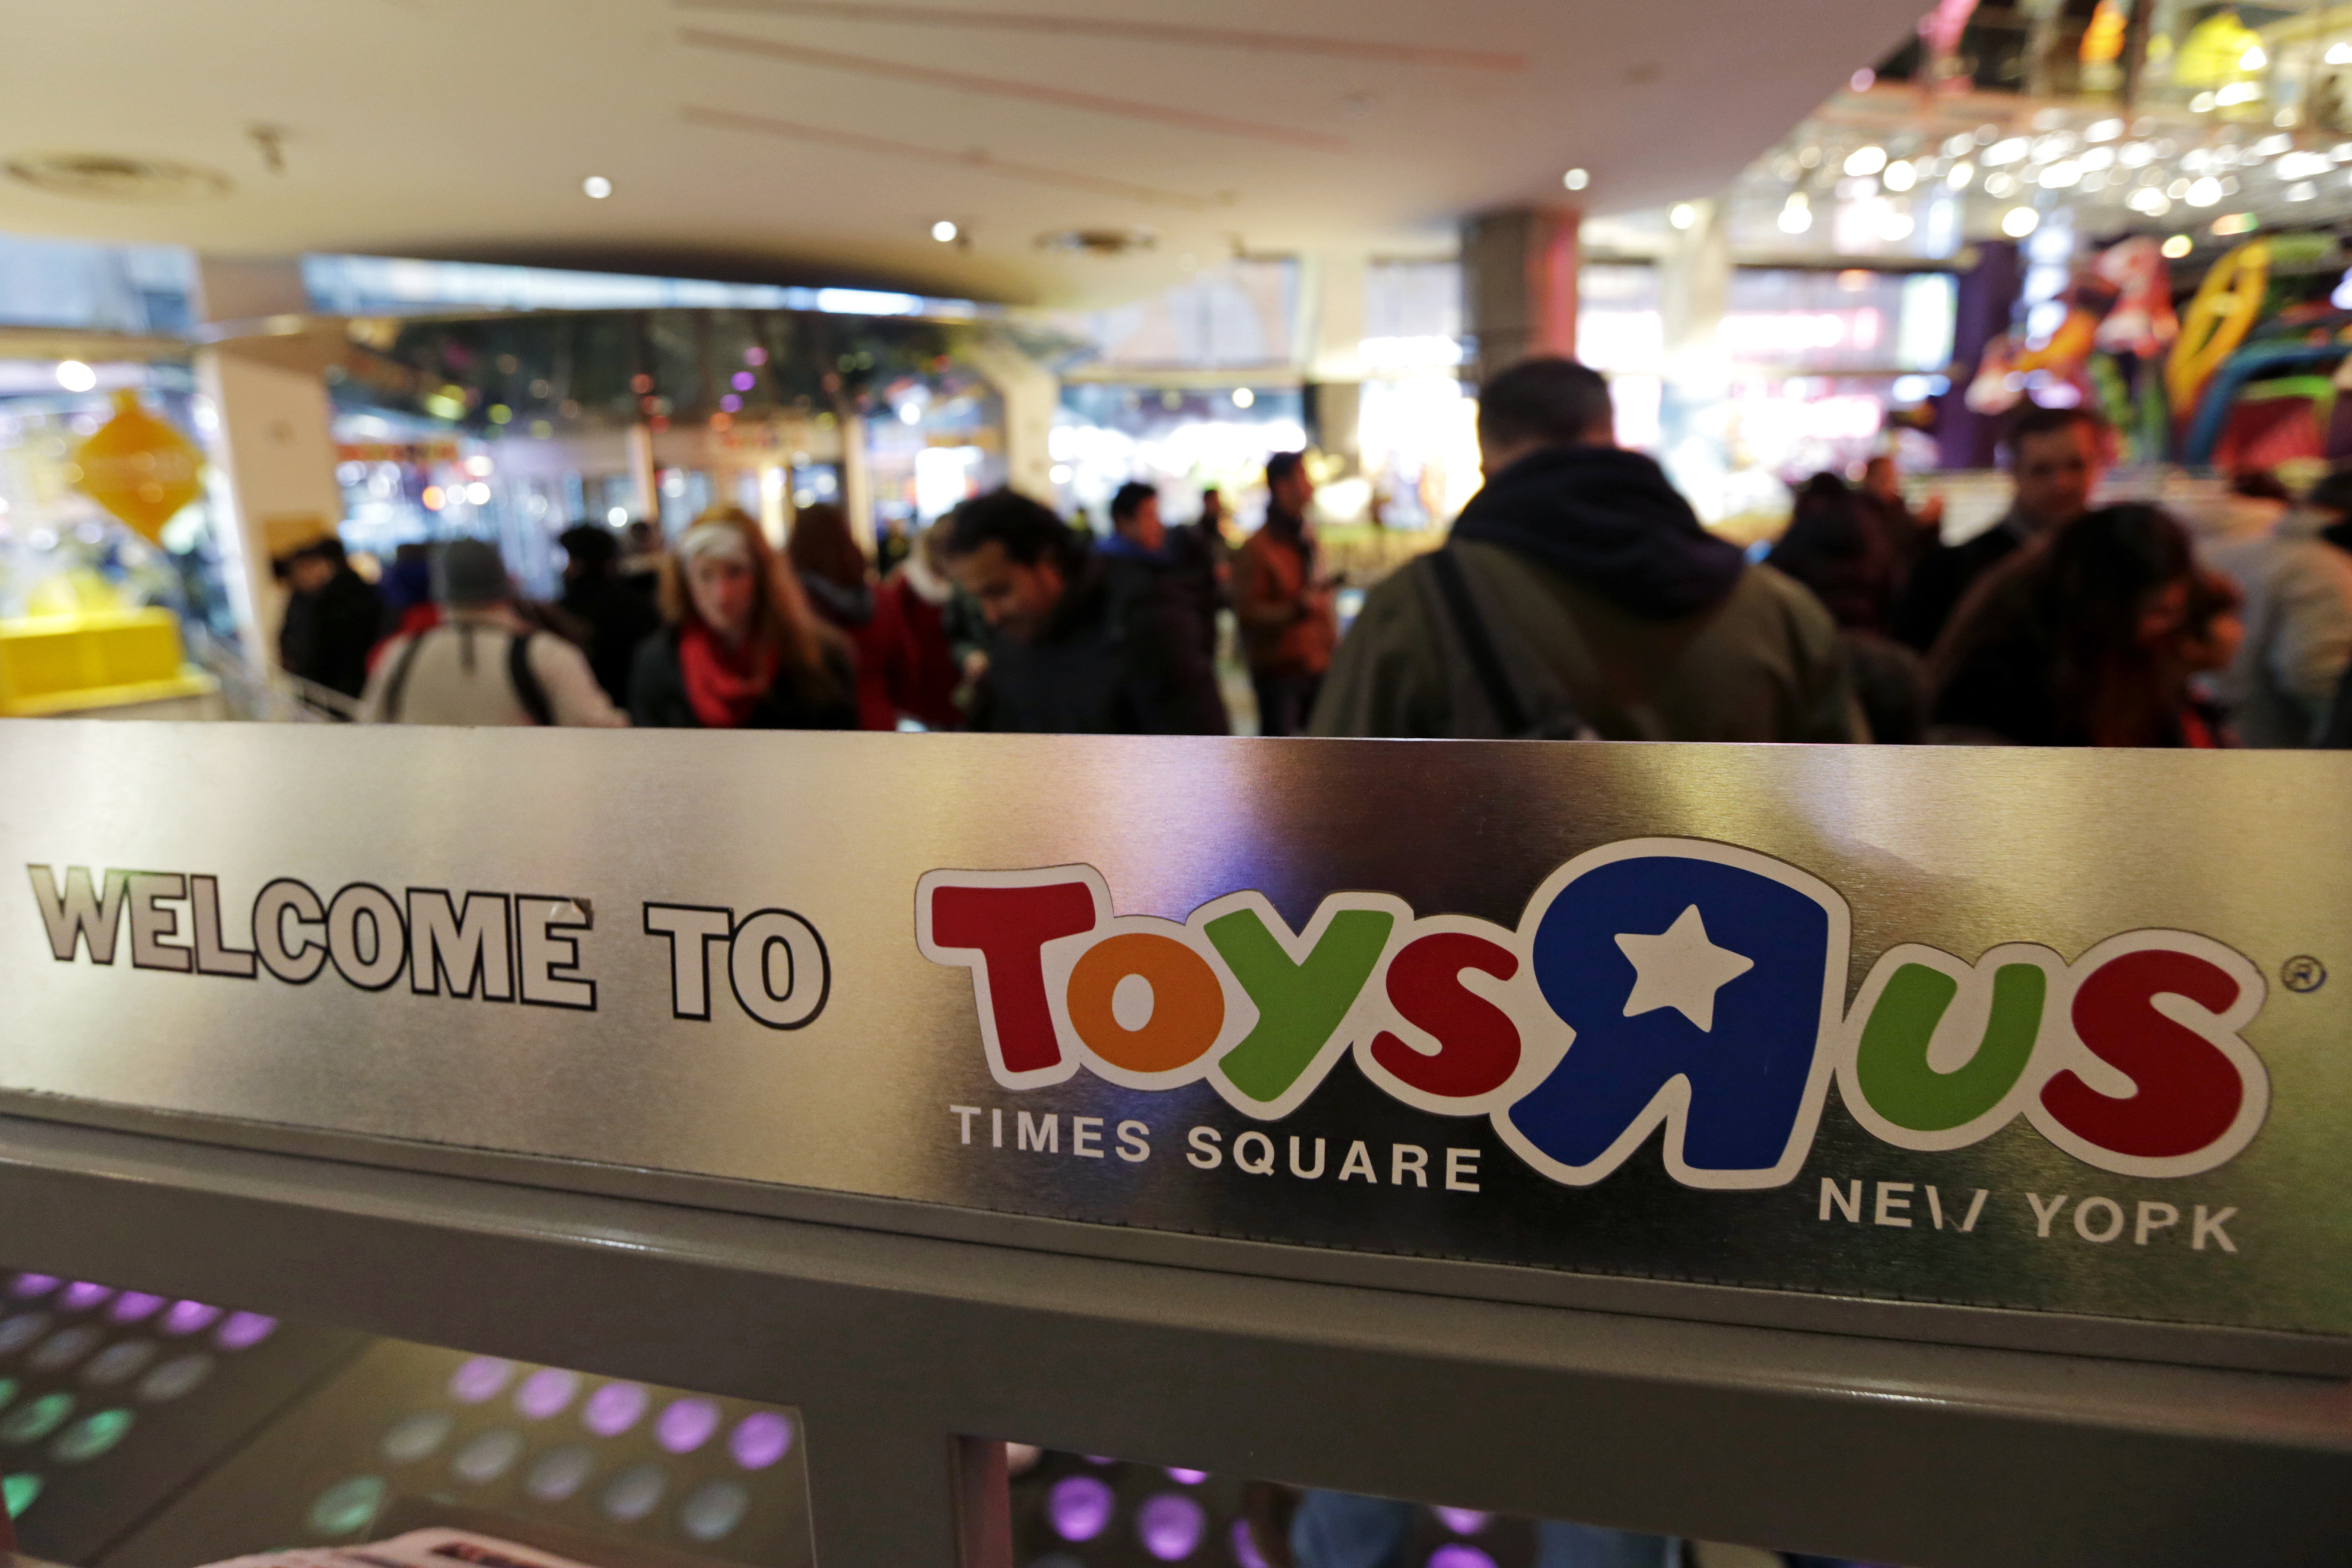 The Toys R Us Inc. logo is displayed inside a store ahead of Black Friday in New York, U.S., on Thursday, Nov. 27, 2014